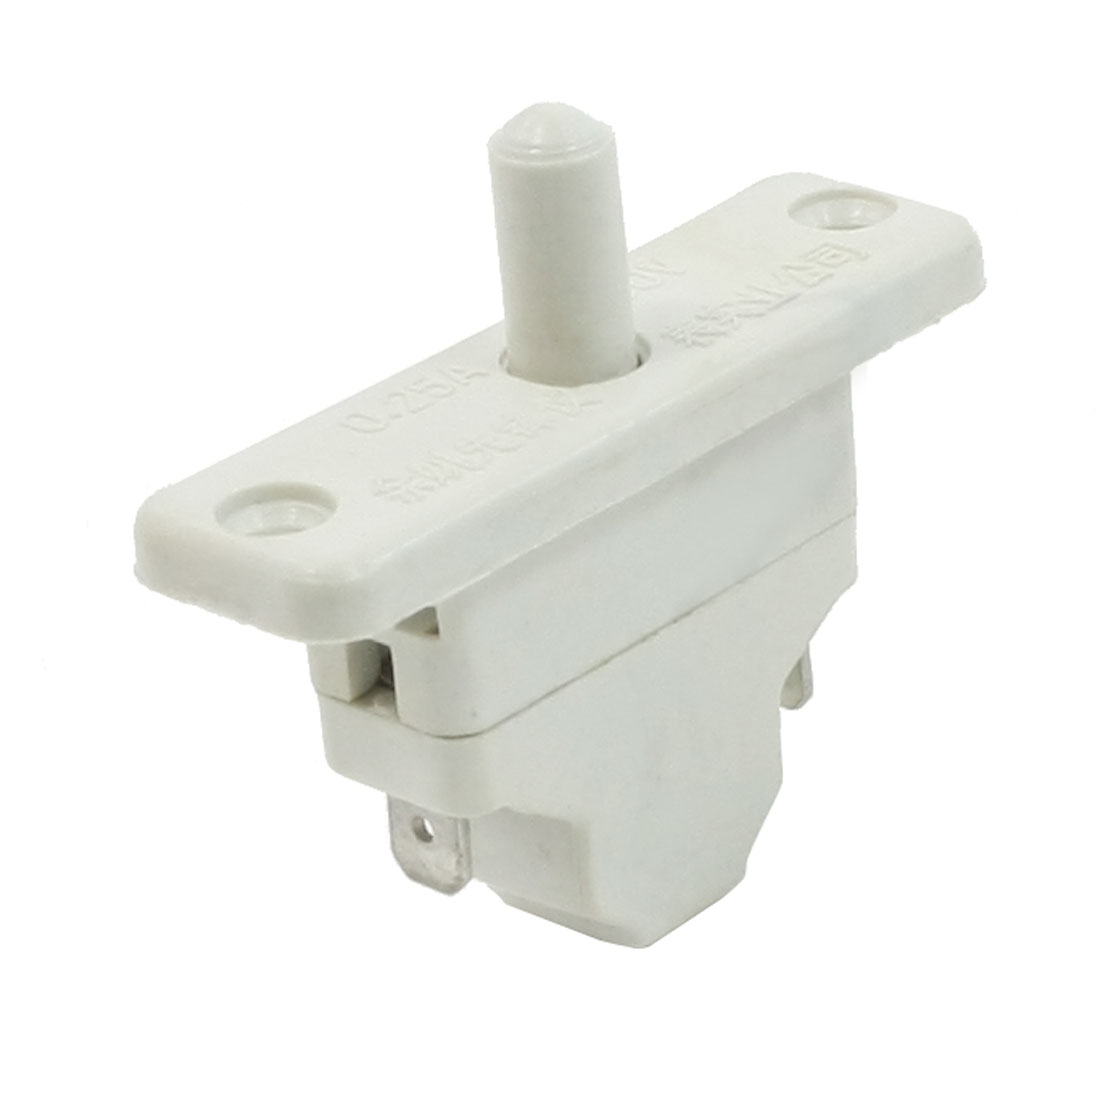 Refrigerator SPST Round Button Momentary Door Light Switch 250V Volt 0.25A